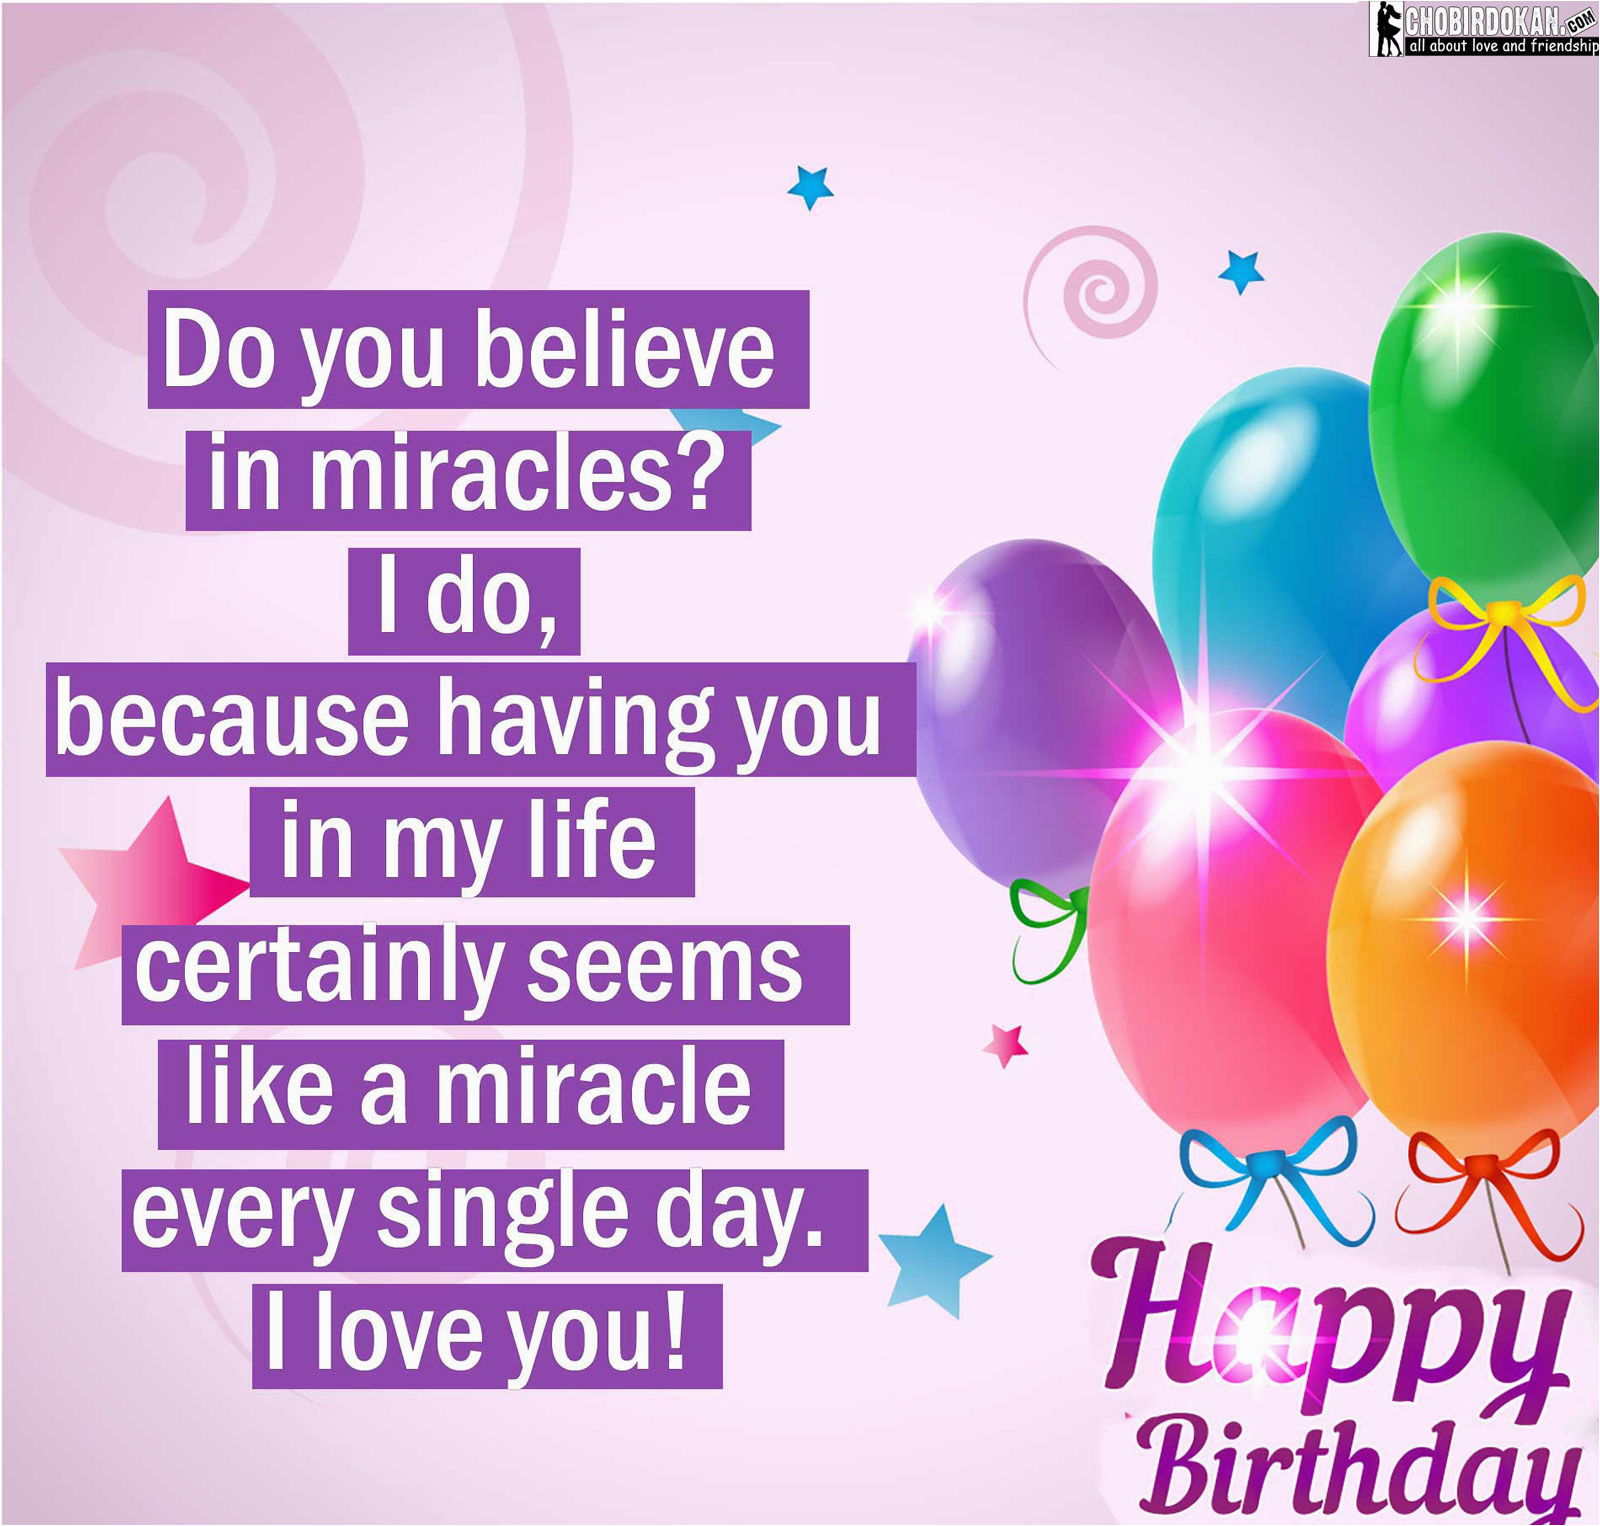 birthday wishes images for girlfriend wife